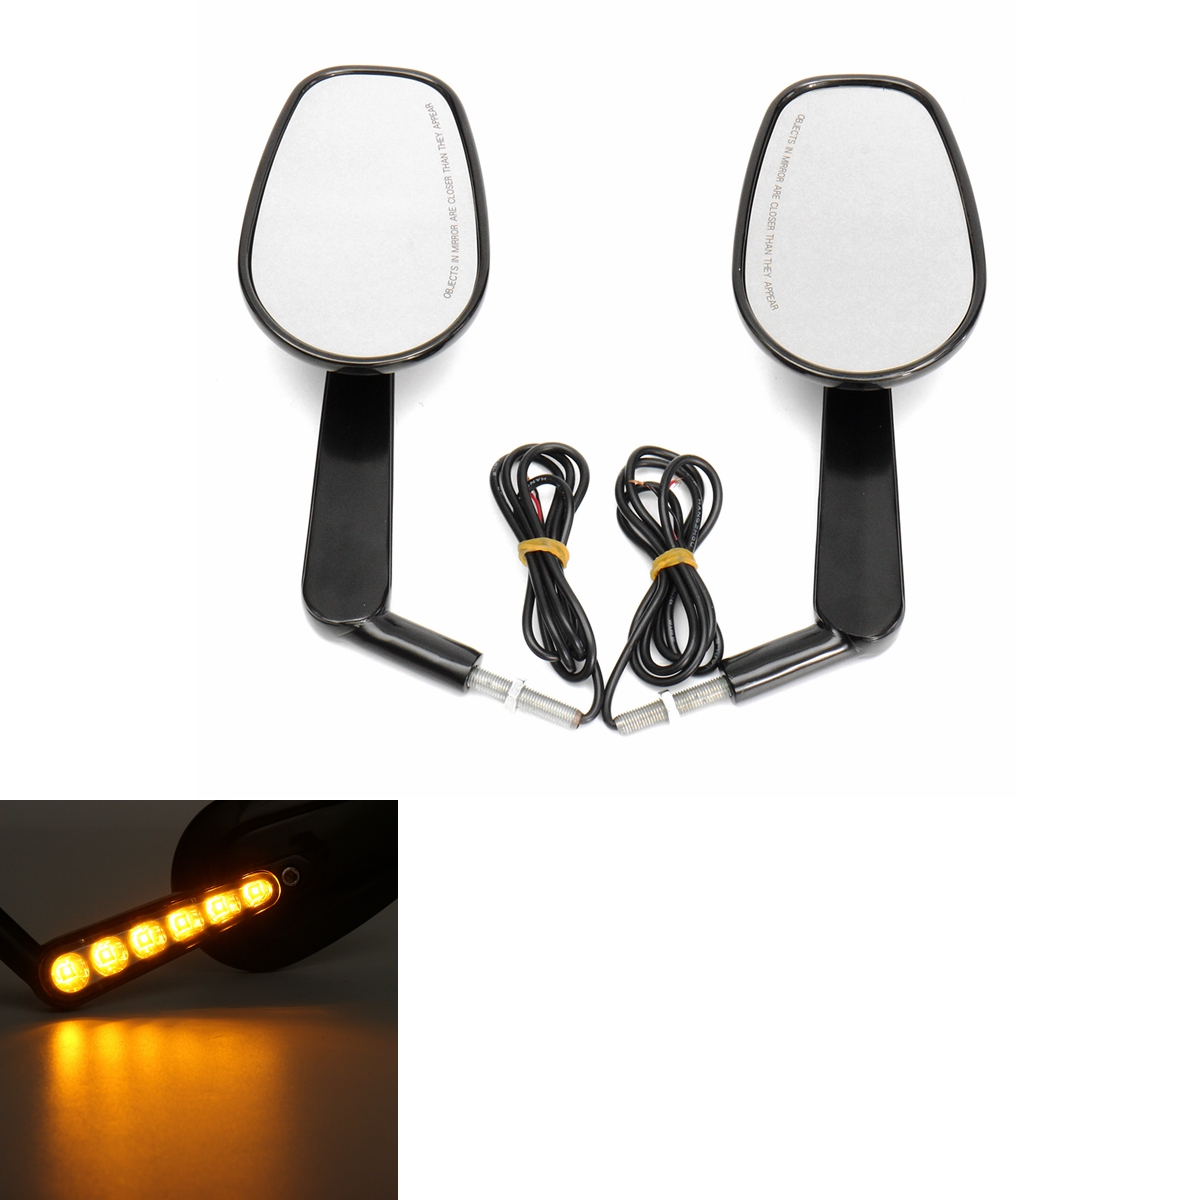 Black Rear Mirrors Turn Signals For Harley Davidson V-R